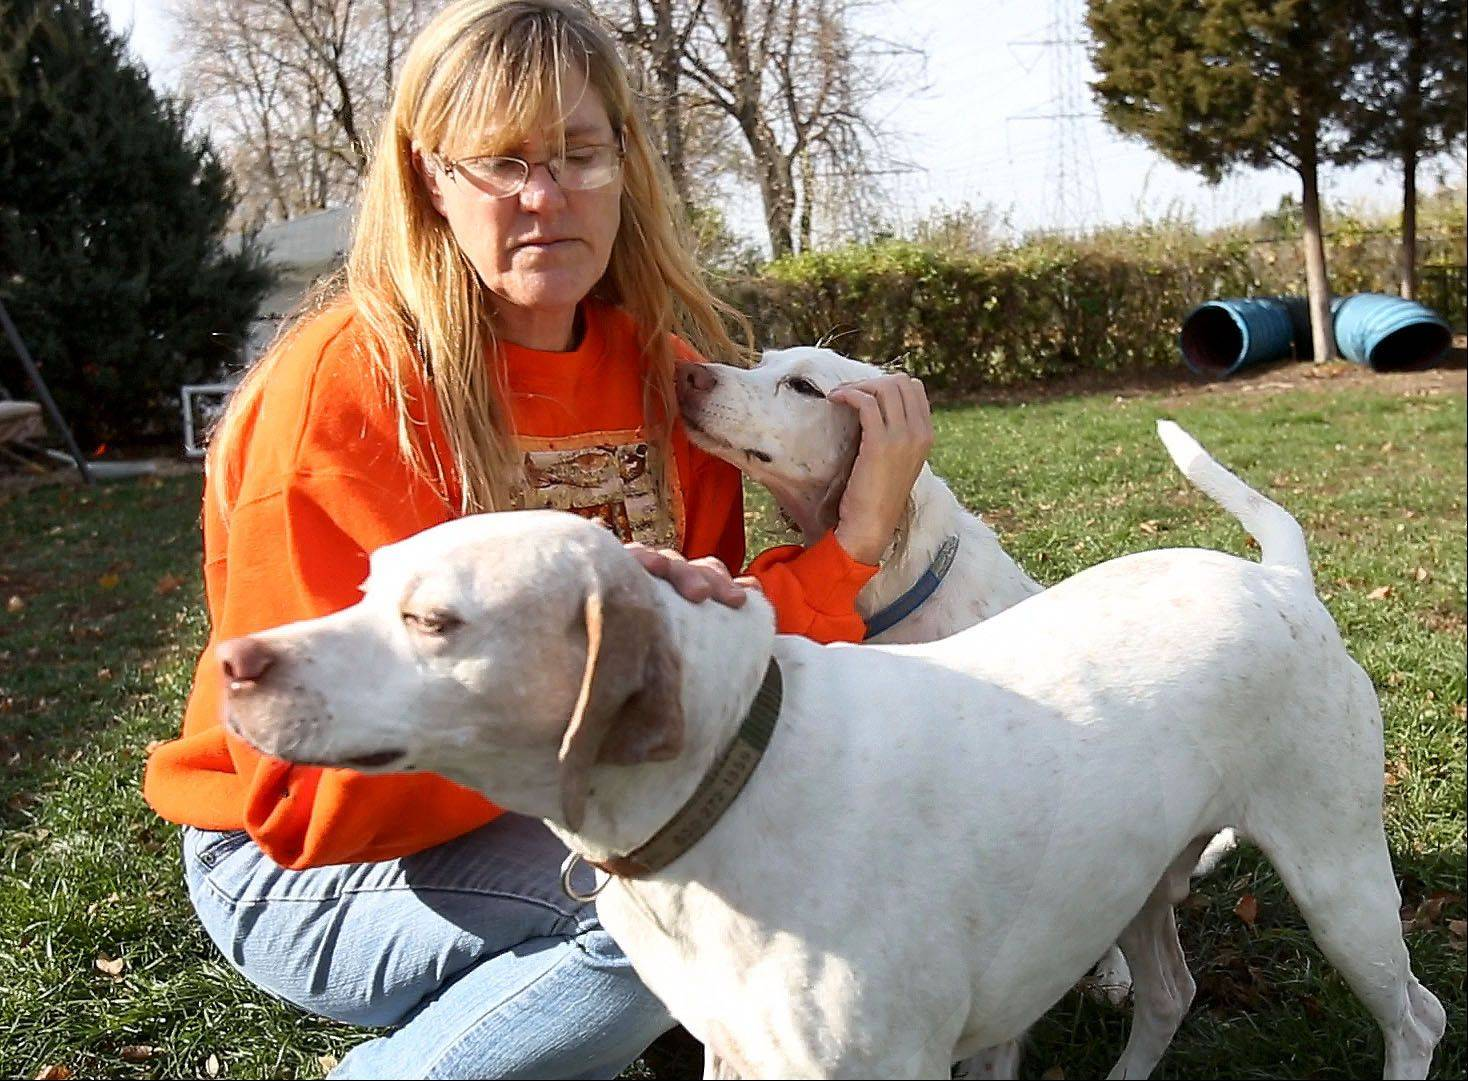 Wood Dale officials say they're dropping a complaint against Lisa Spakowski, a rescue leader who is caring for five dogs -- two more than allowed by code.